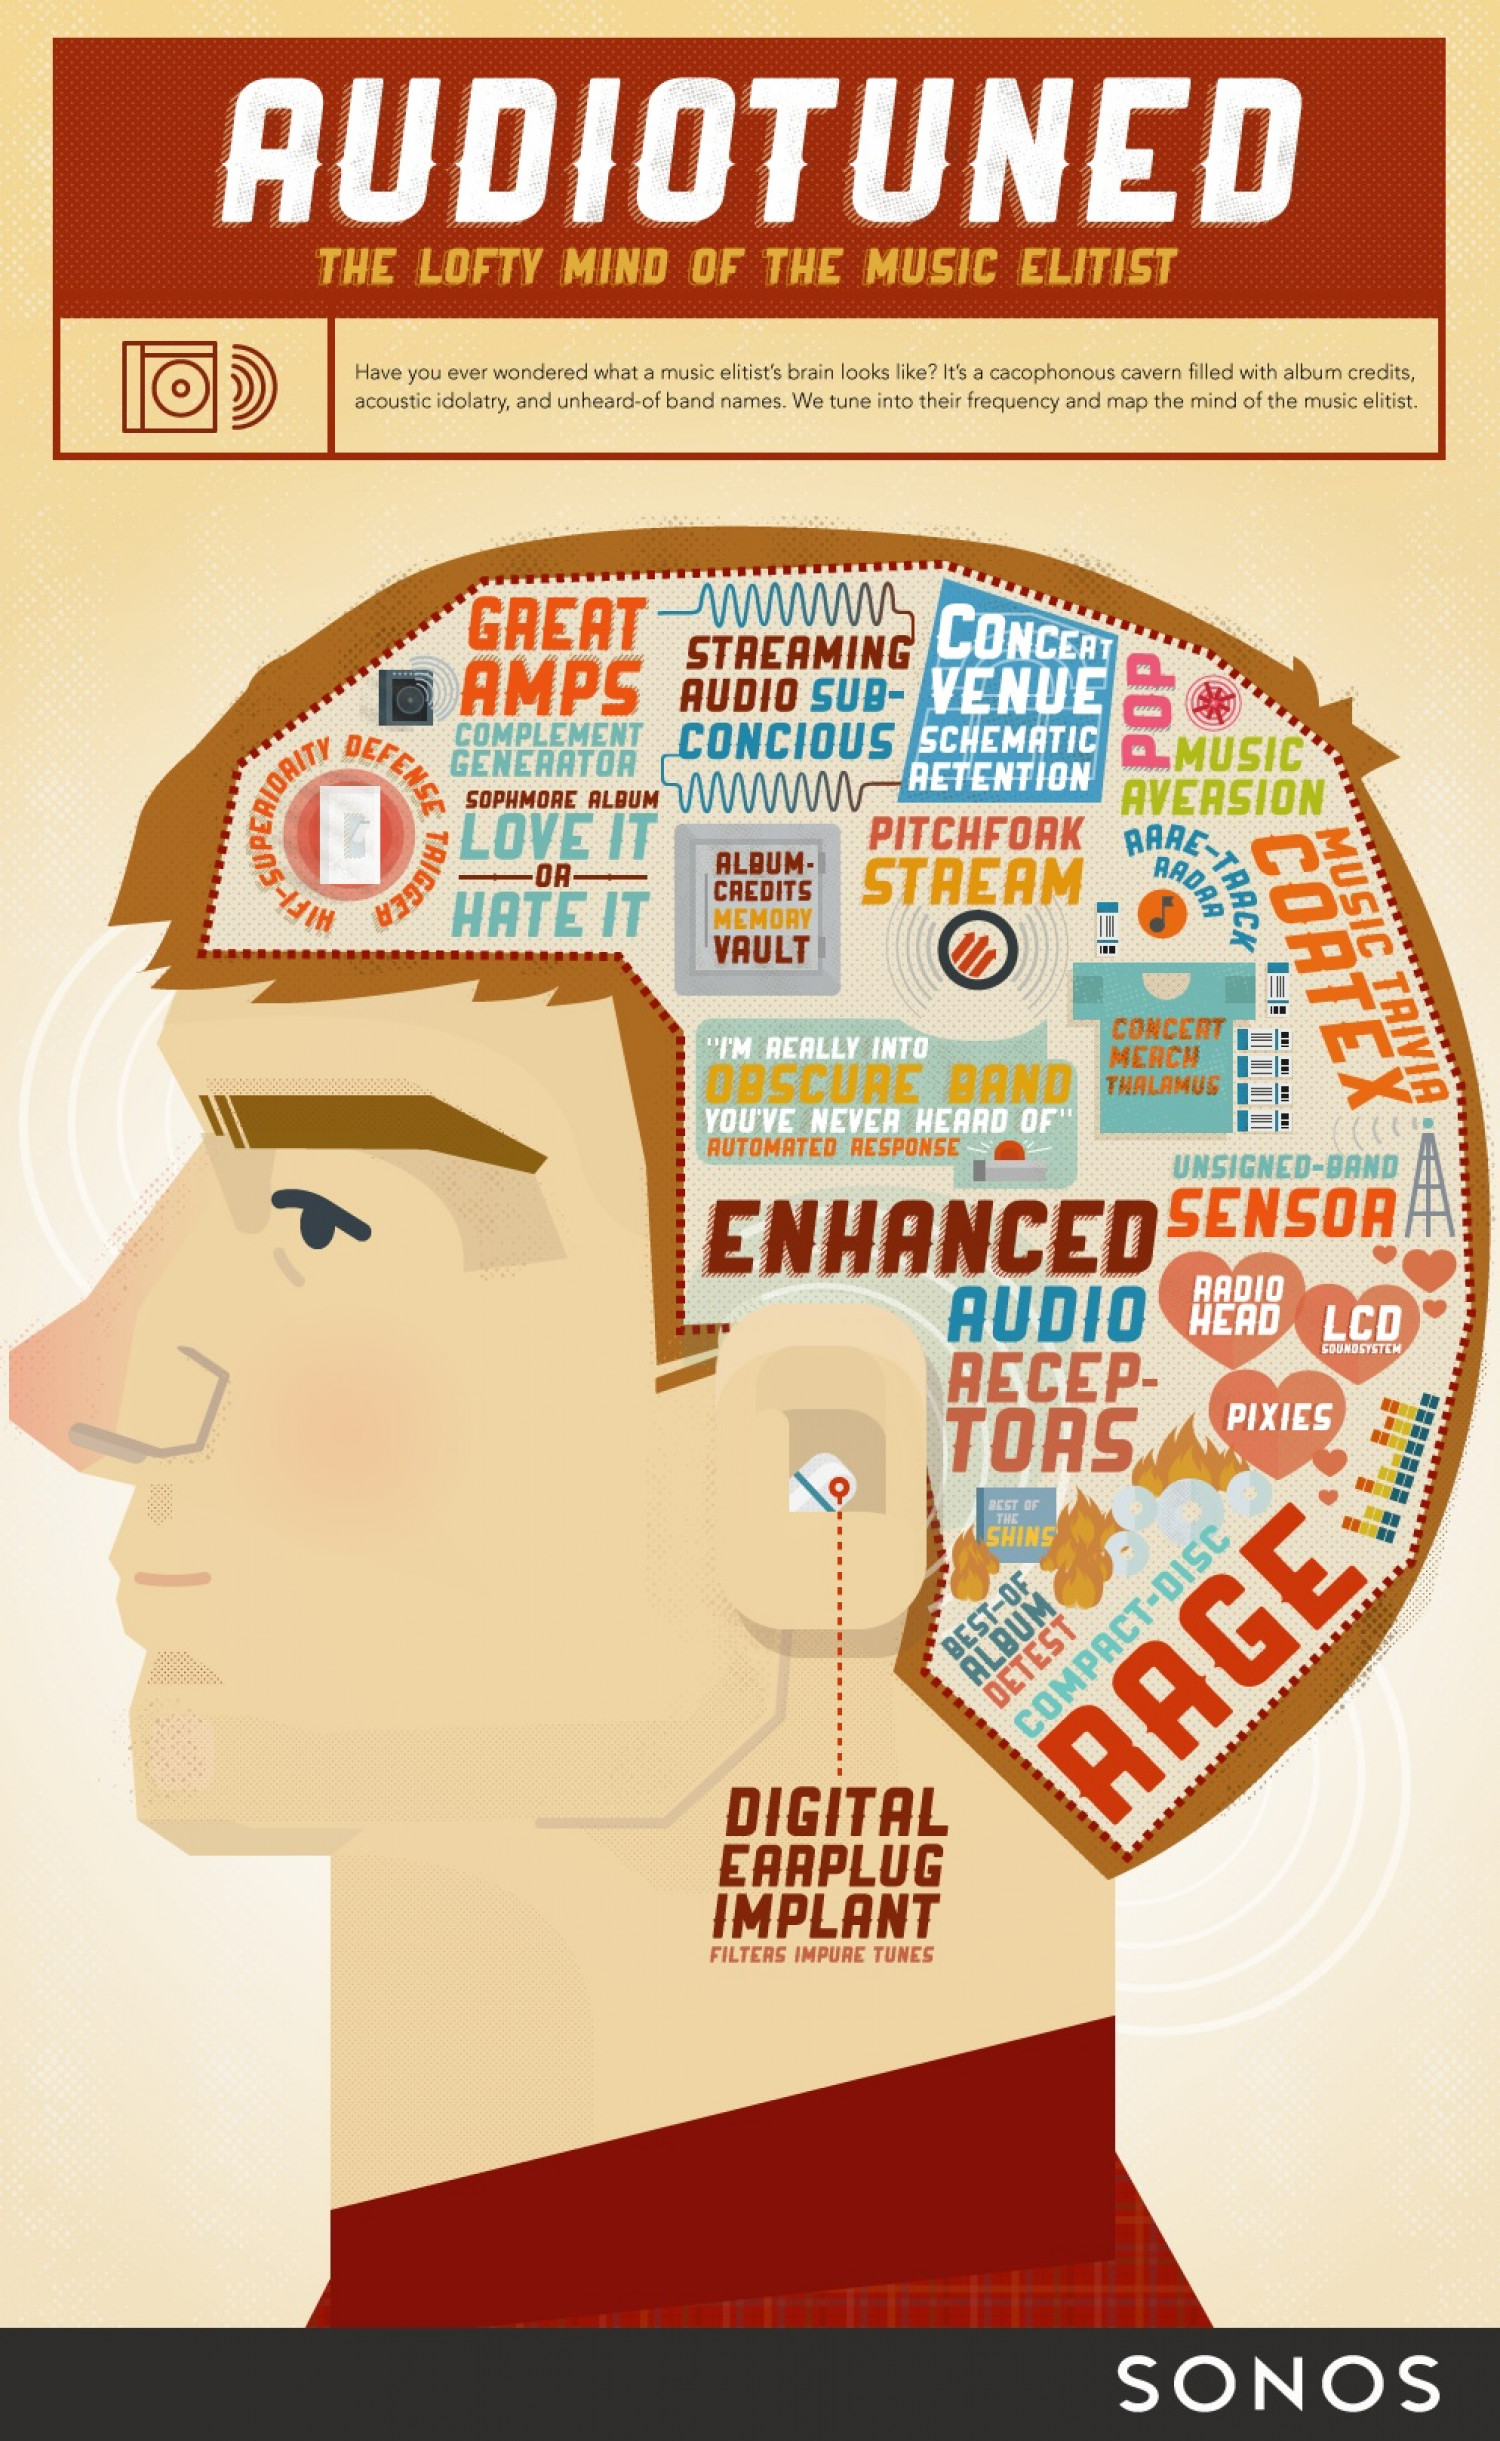 Audiotuned: The lofty mind of the music elitist Infographic